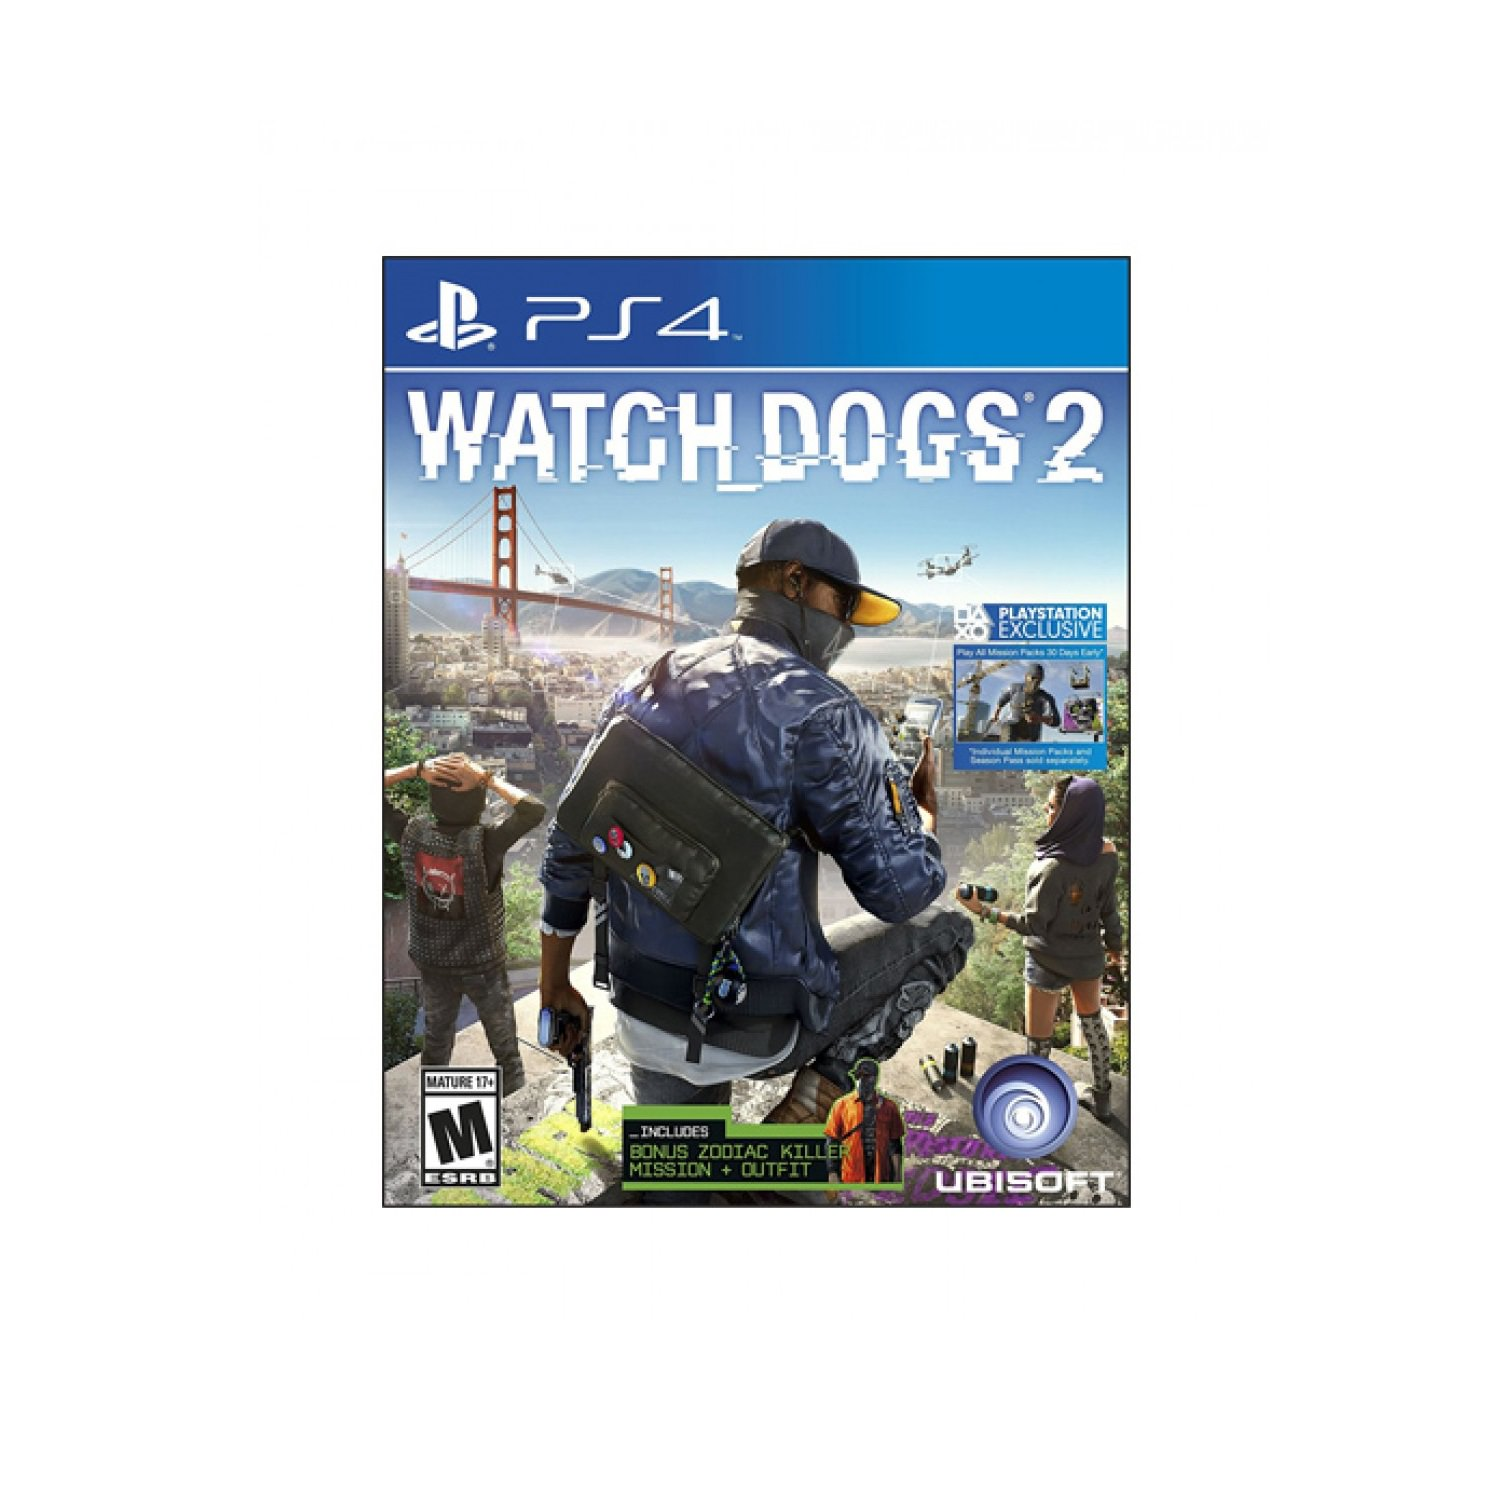 Watch Dogs 2 (Playstation 4) by UBI SOFT